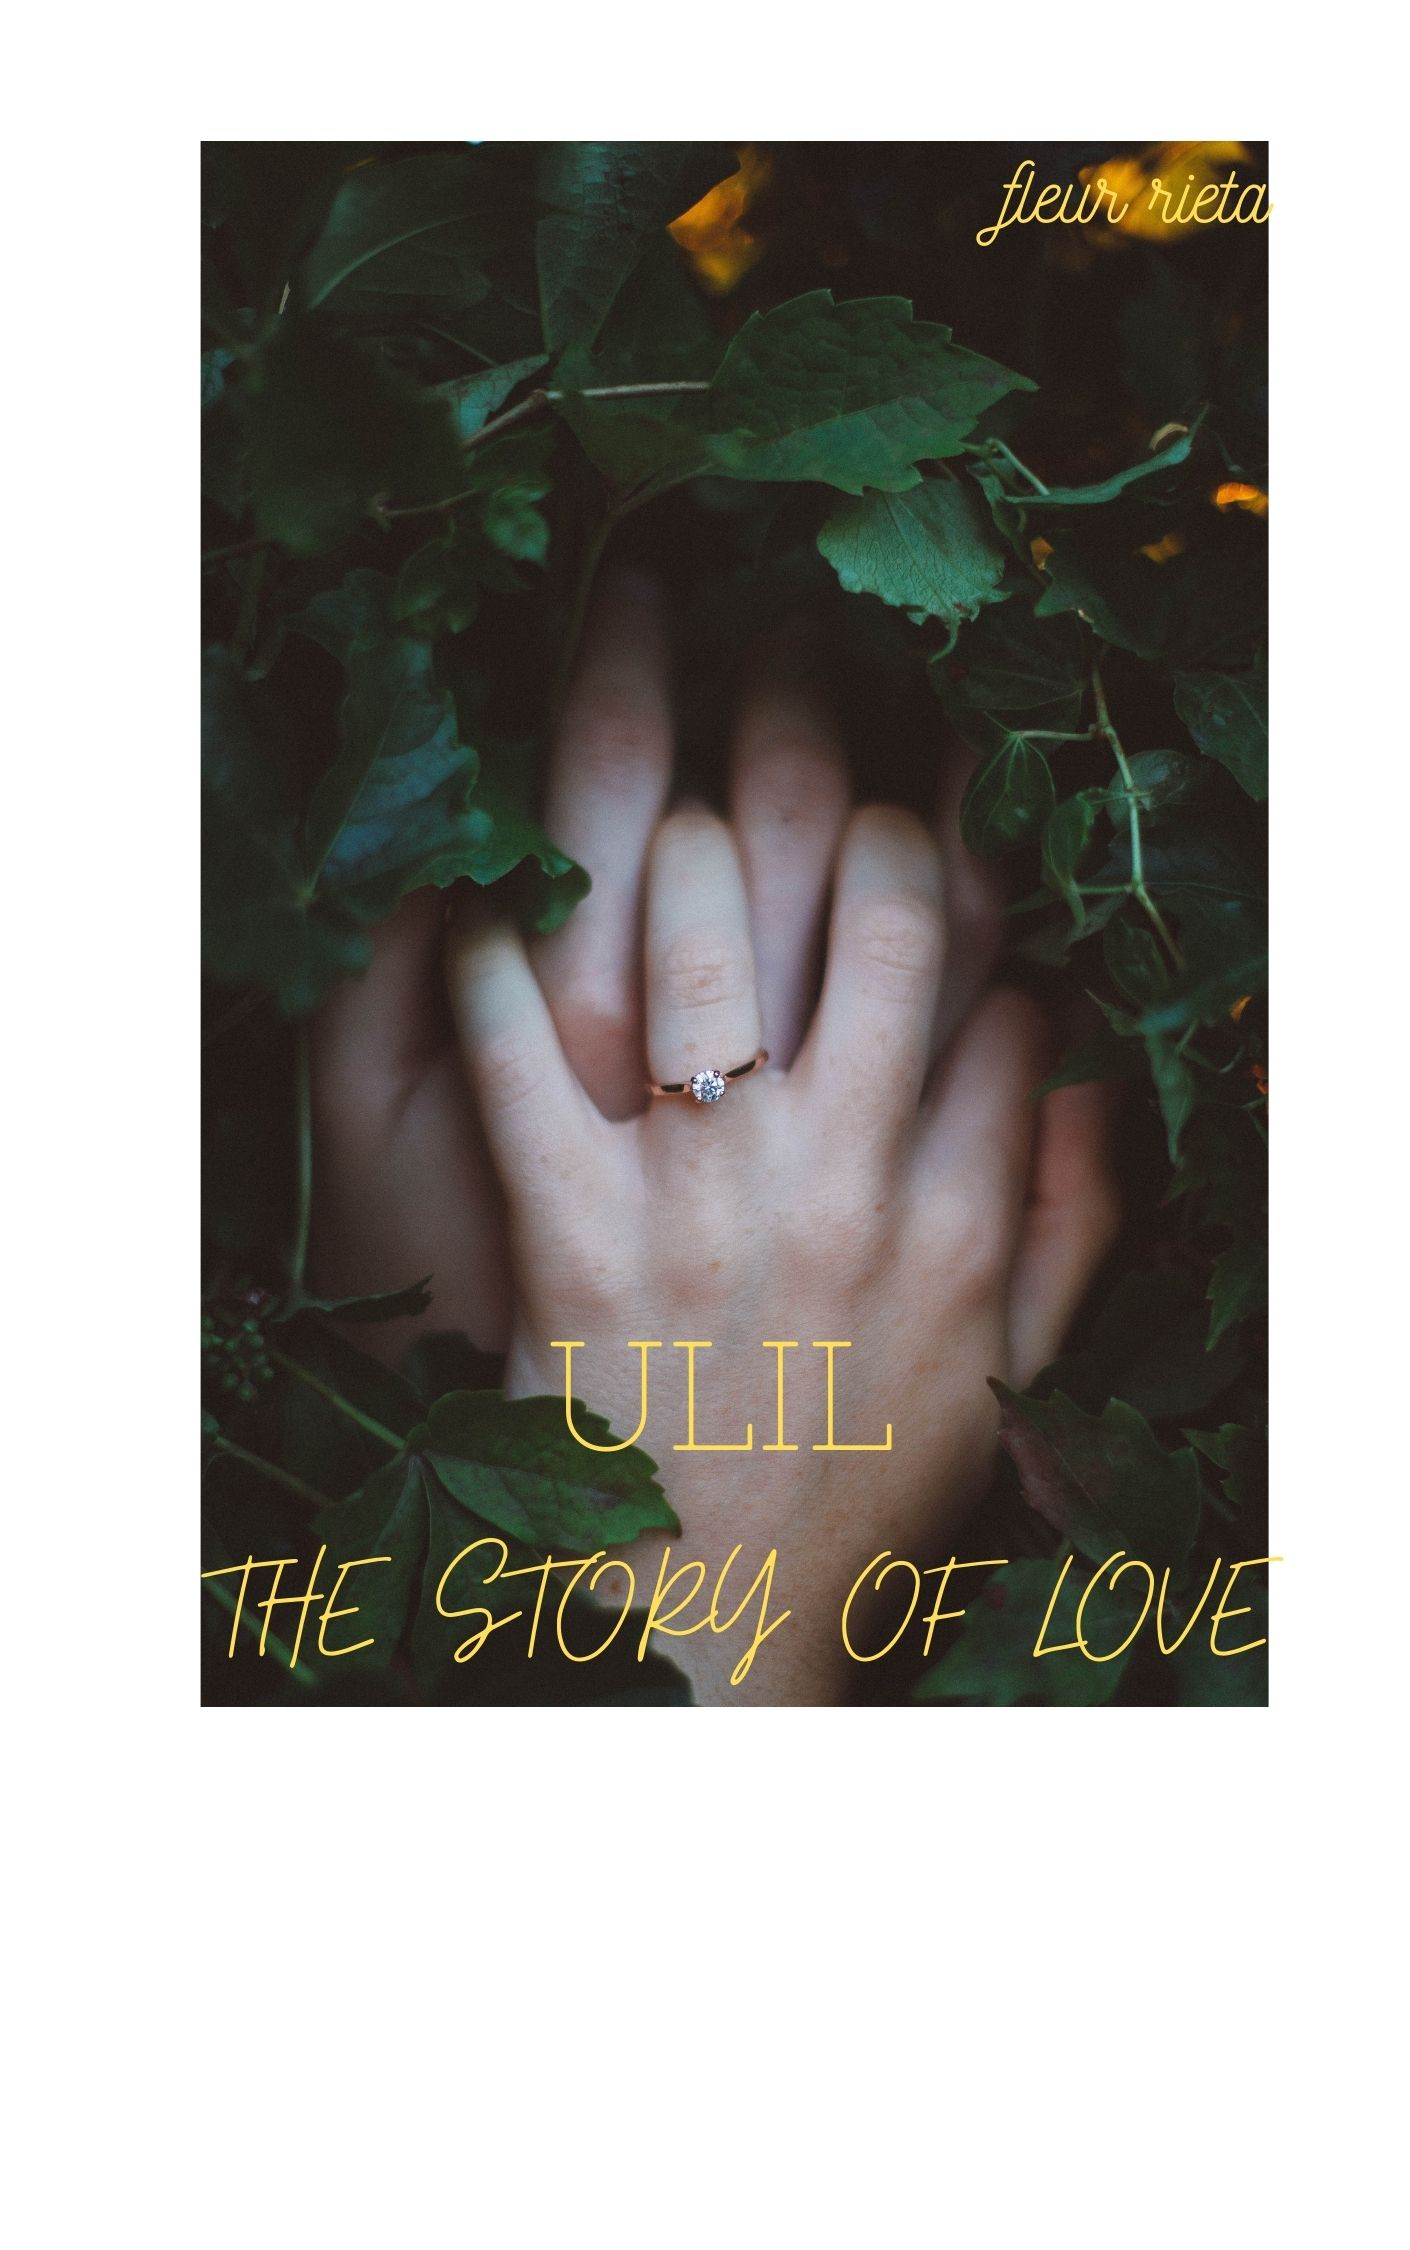 Ulil (the story of love)